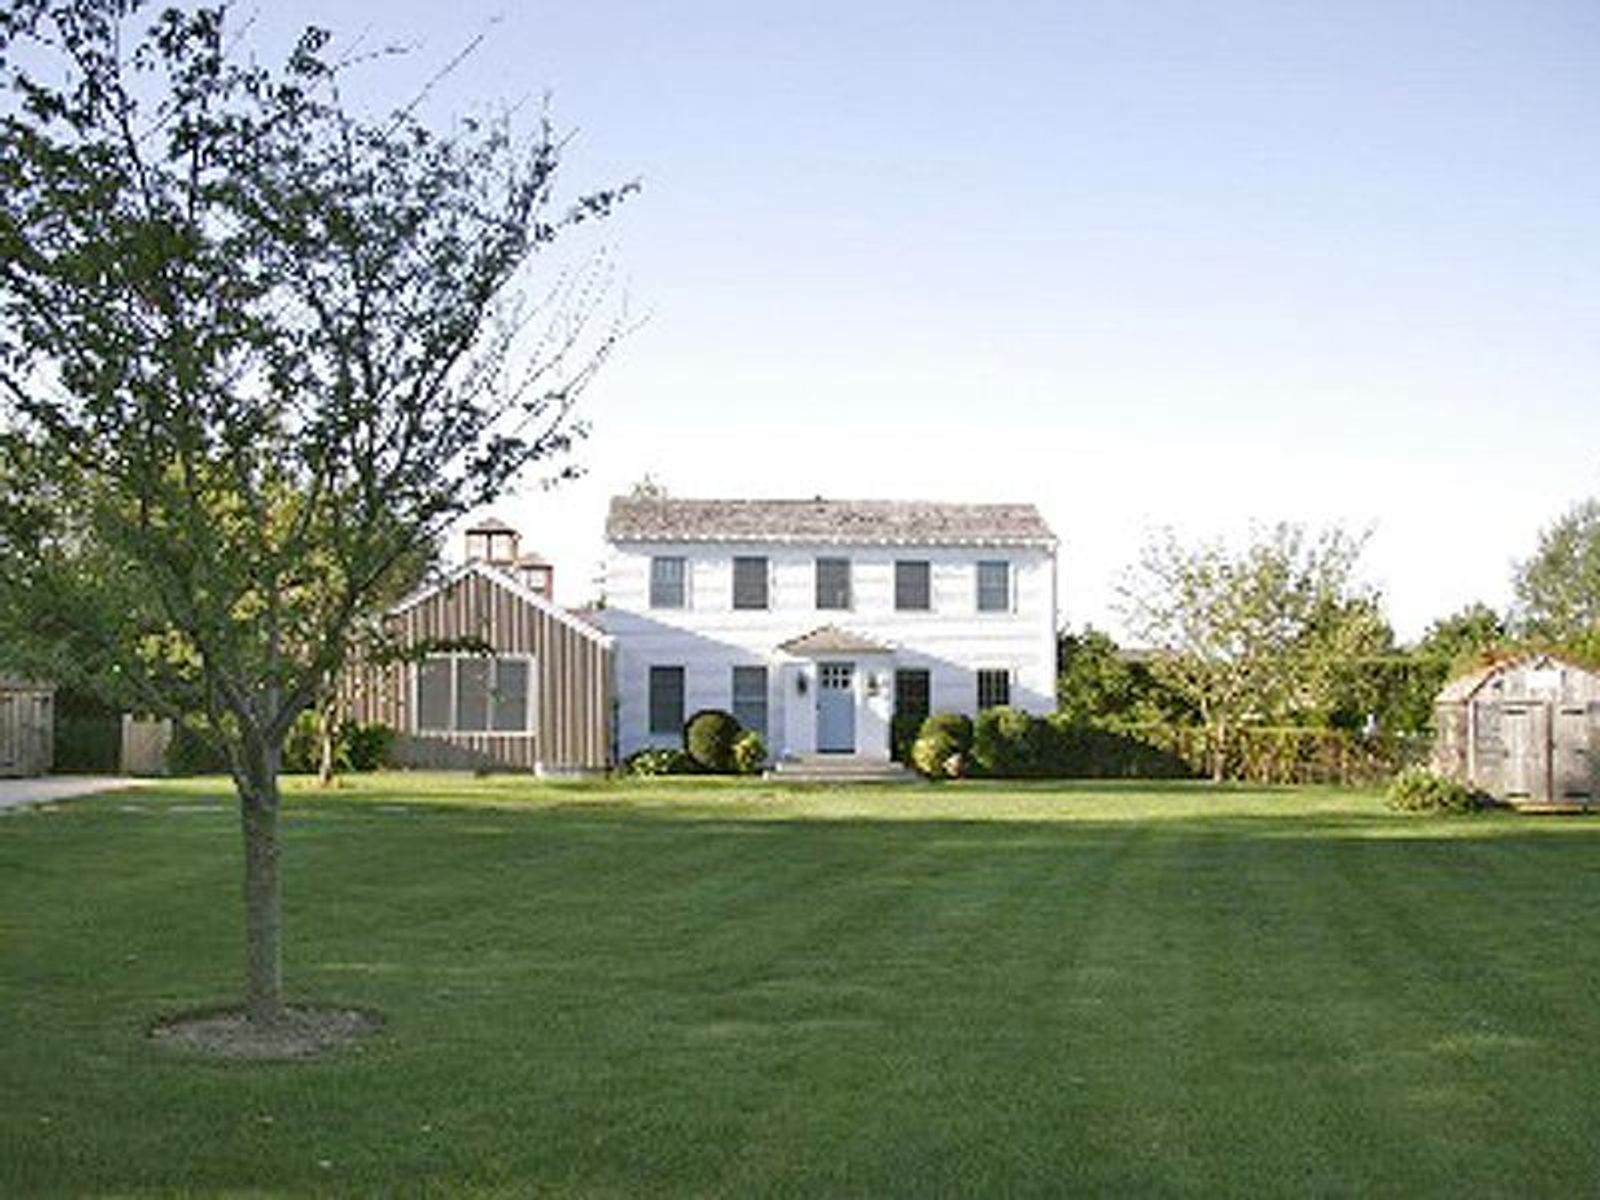 Bridgehampton South Excellence, Water Mill NY Single Family Home - Hamptons Real Estate